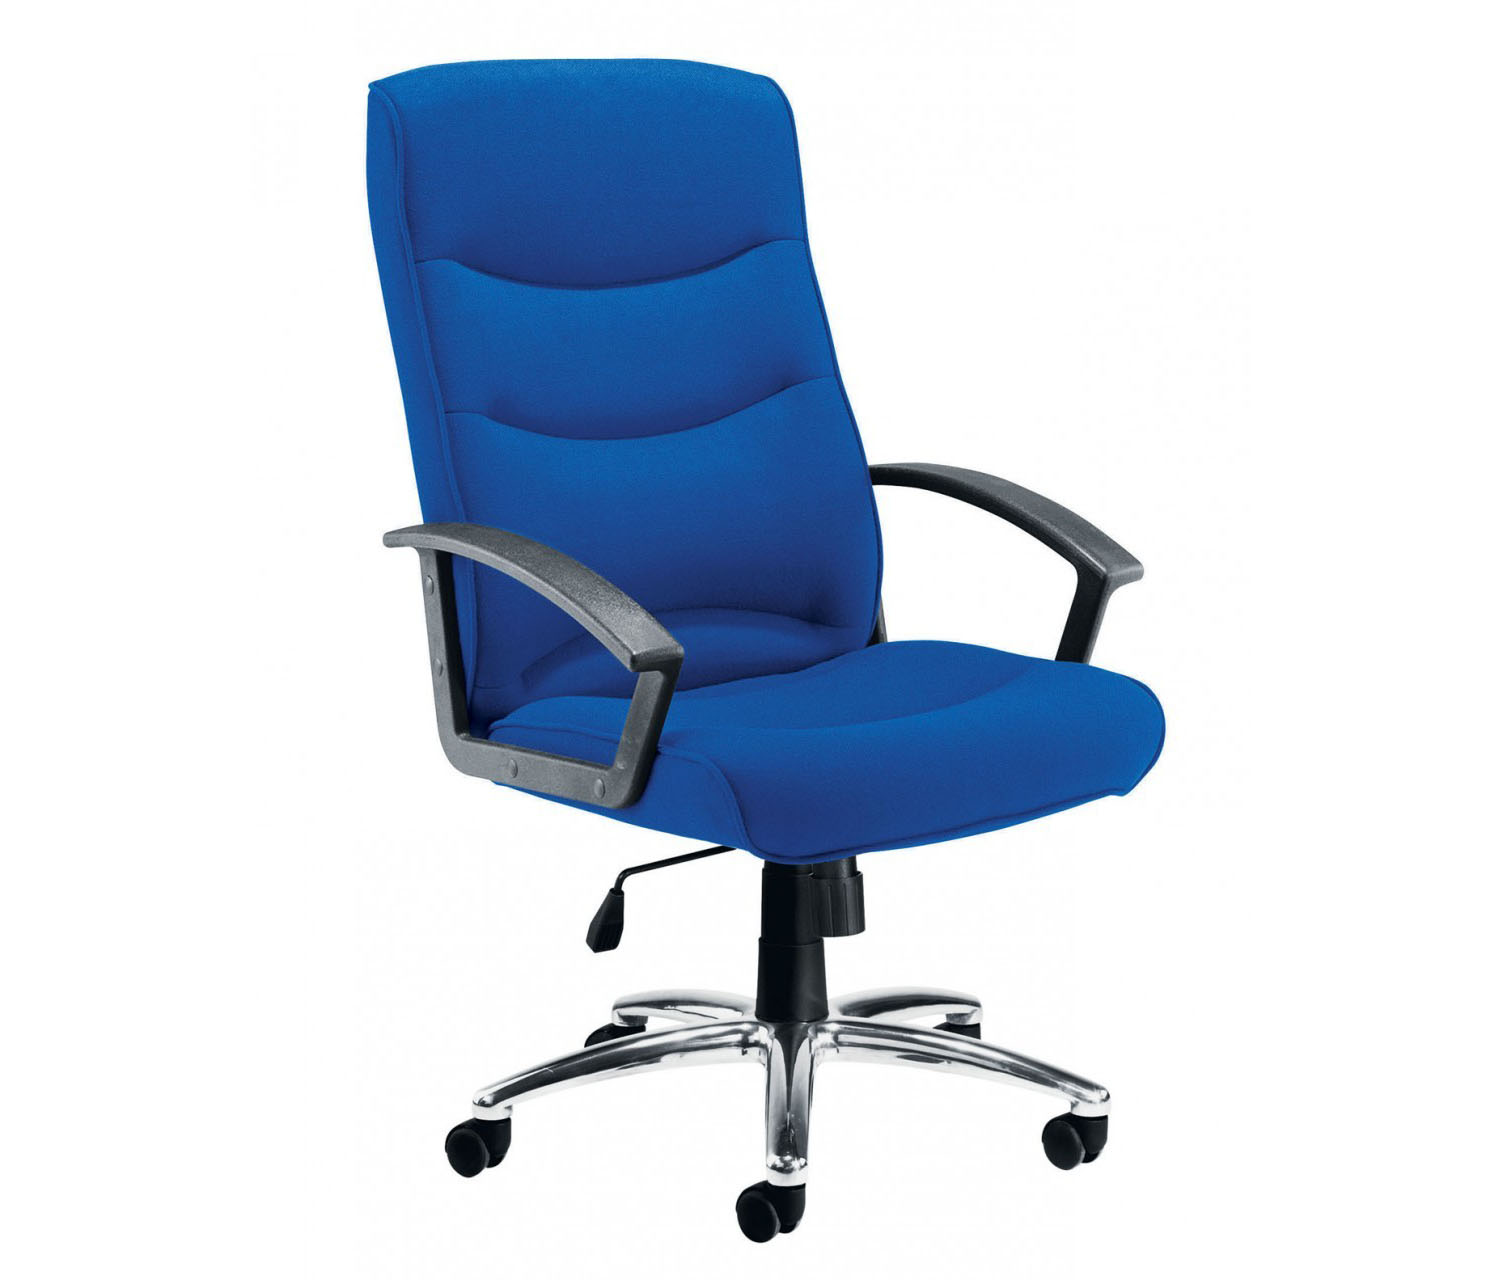 Best Budget Office Chairs For Your Healthy And Comfy